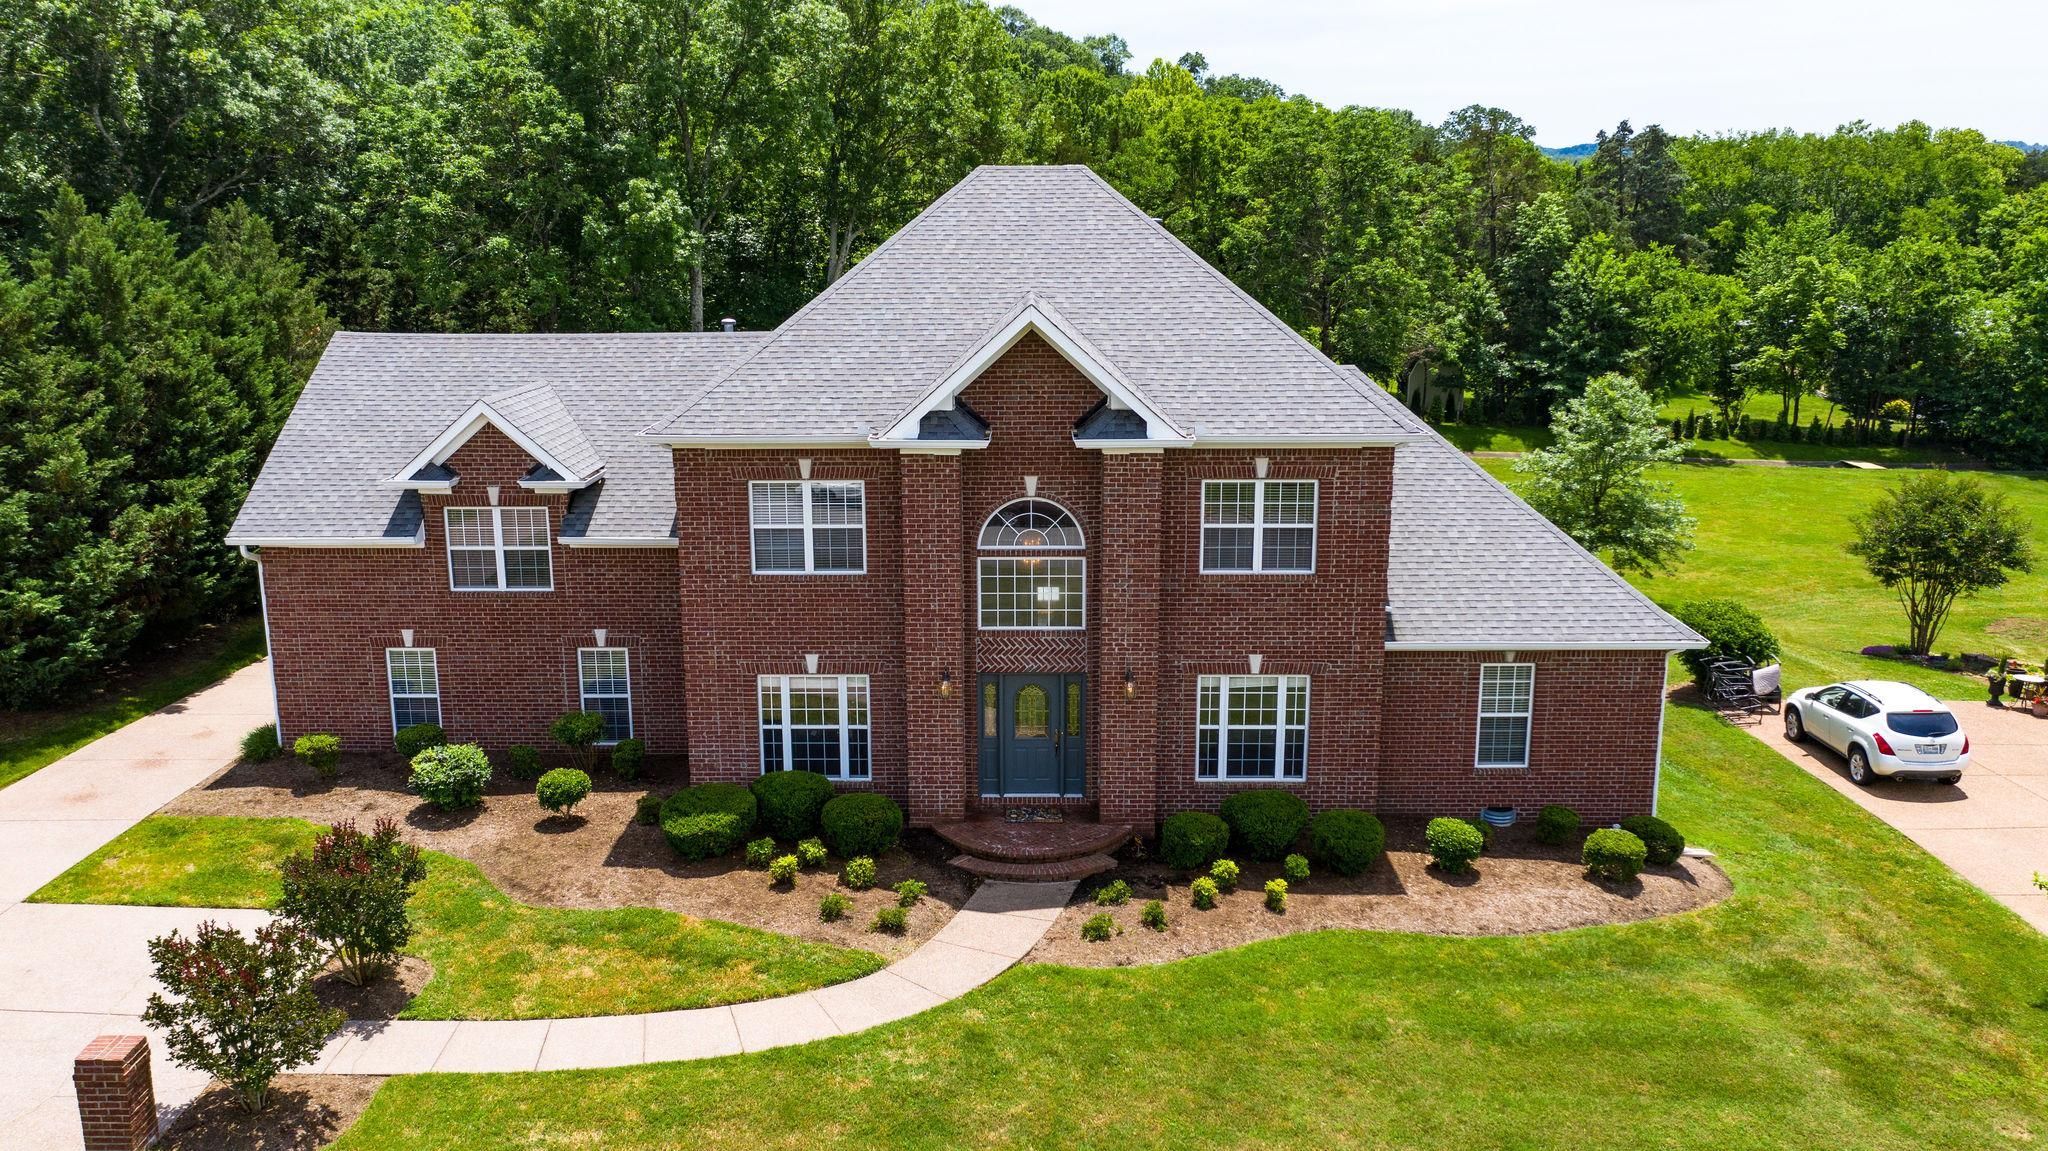 5808 Chaseview Rd, Bellevue, Tennessee